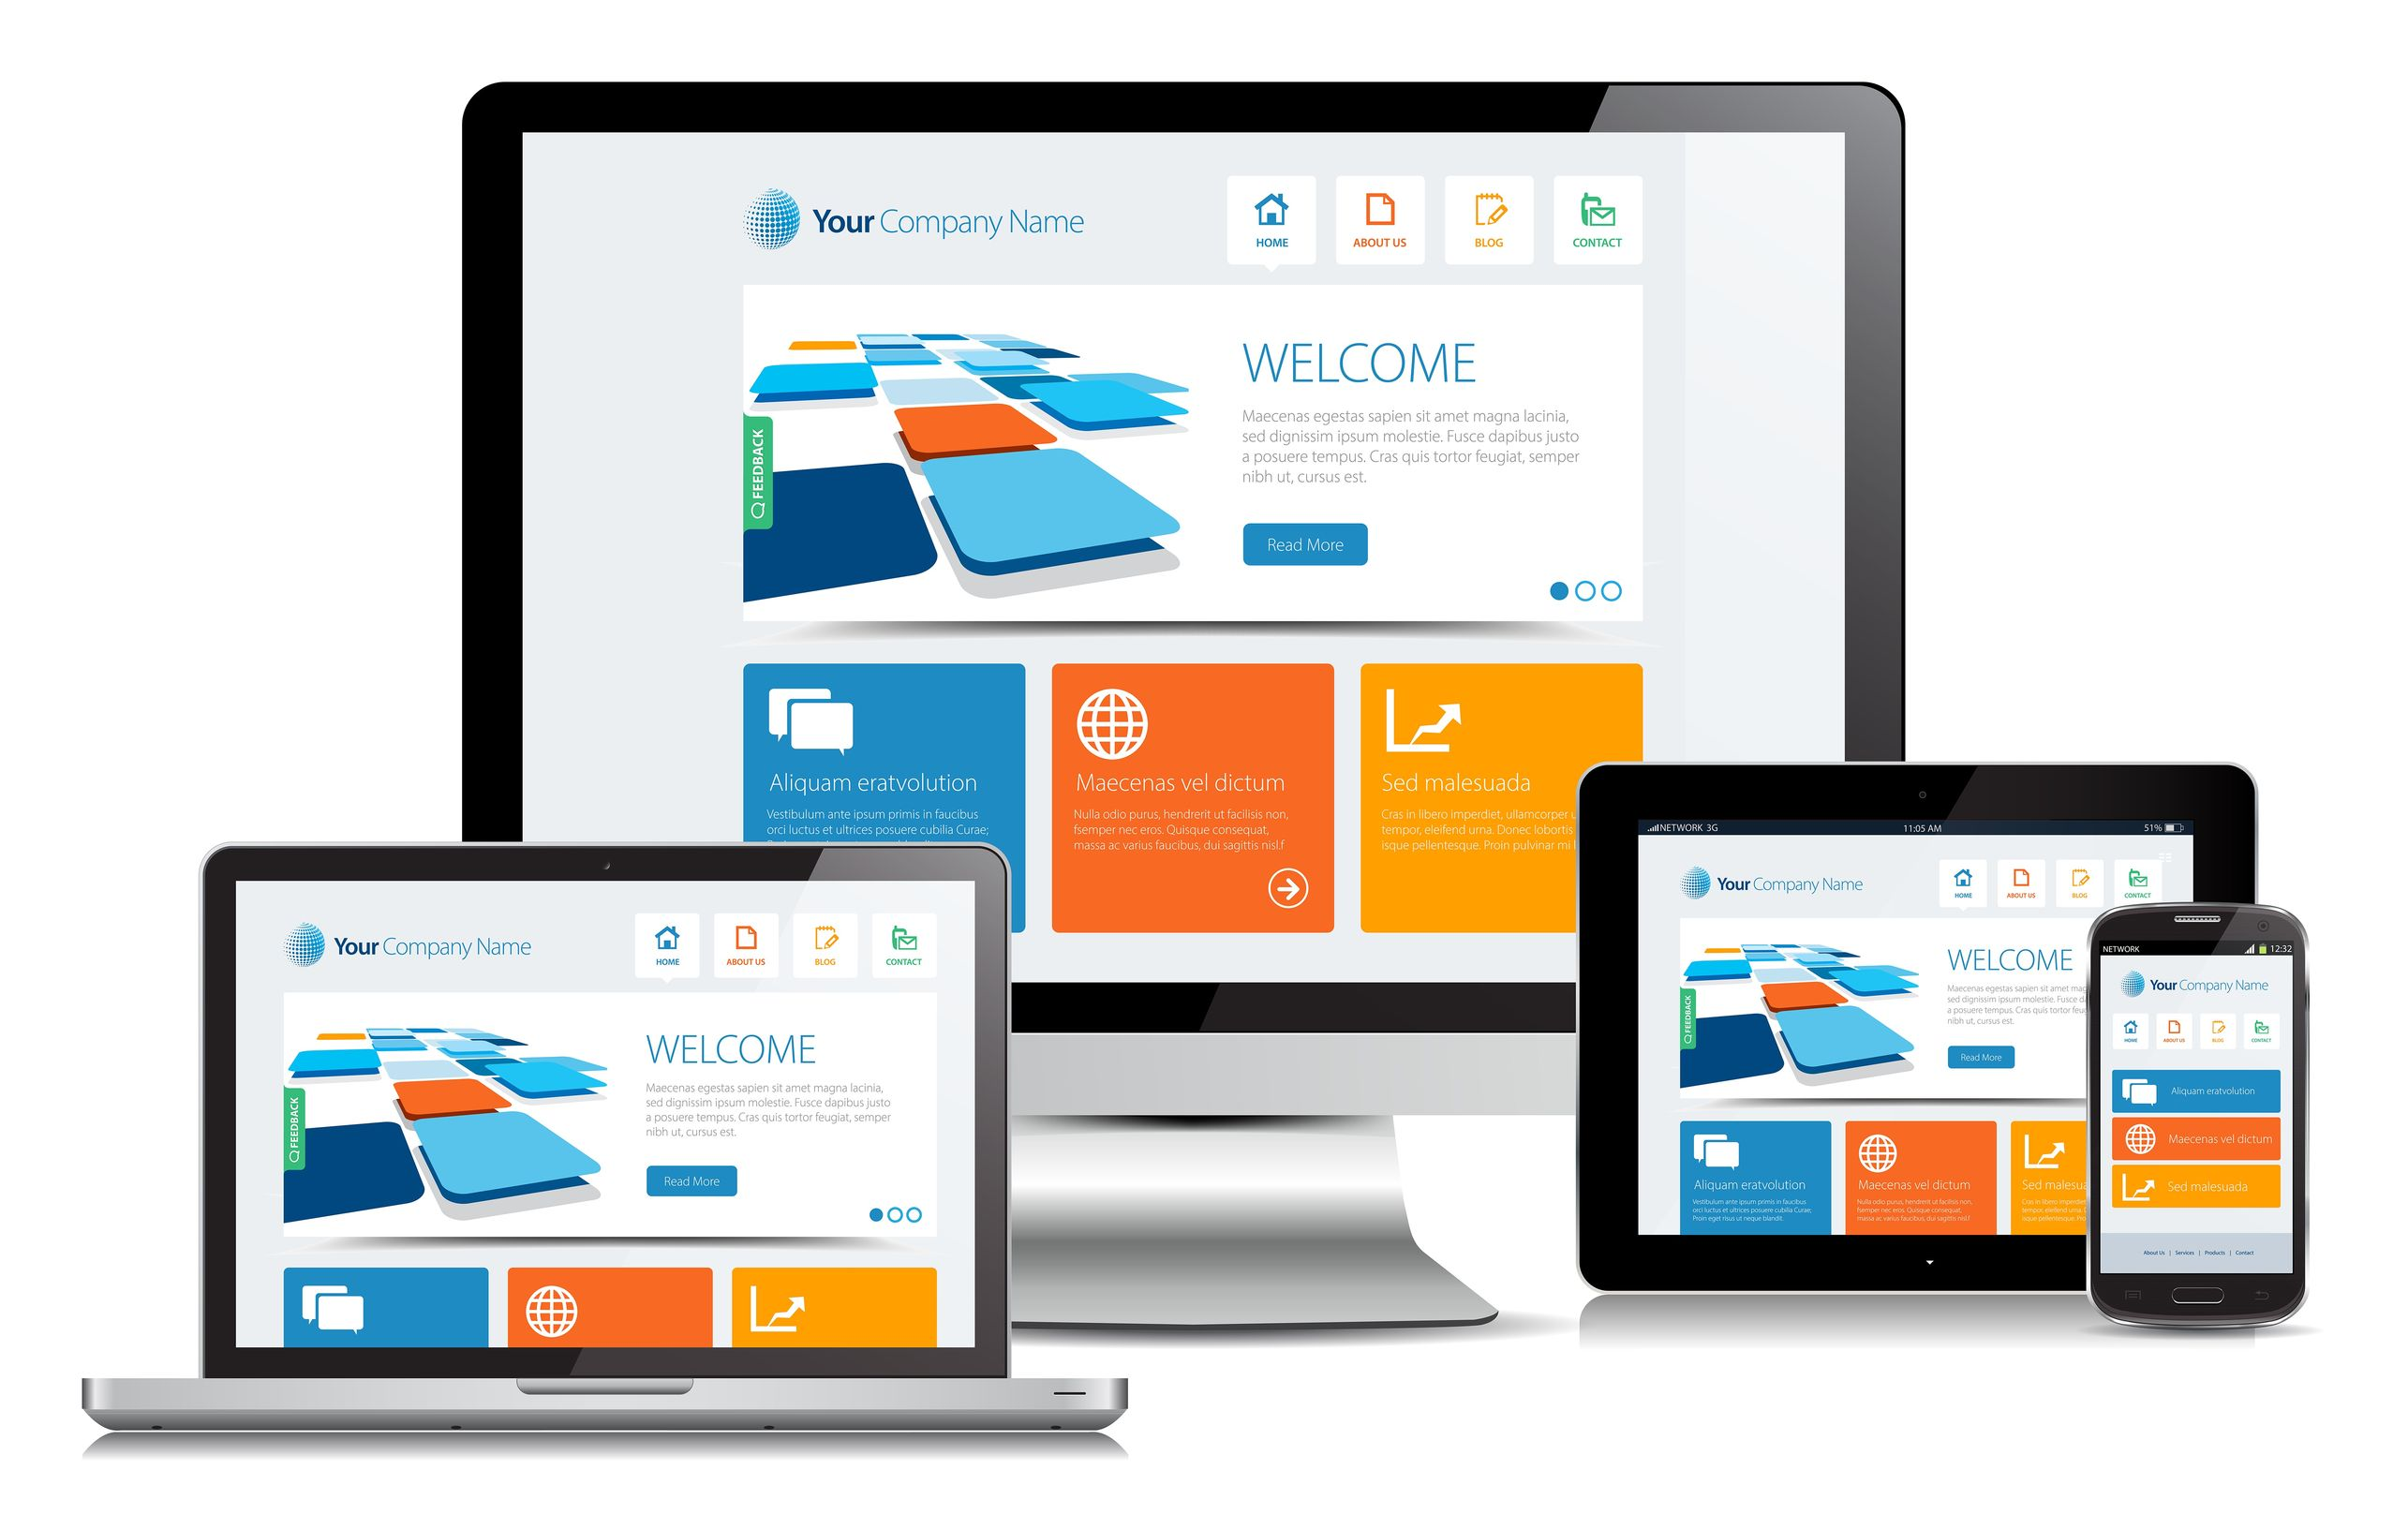 a website Online tests and testing for certification, practice tests, test making tools, medical testing and more.